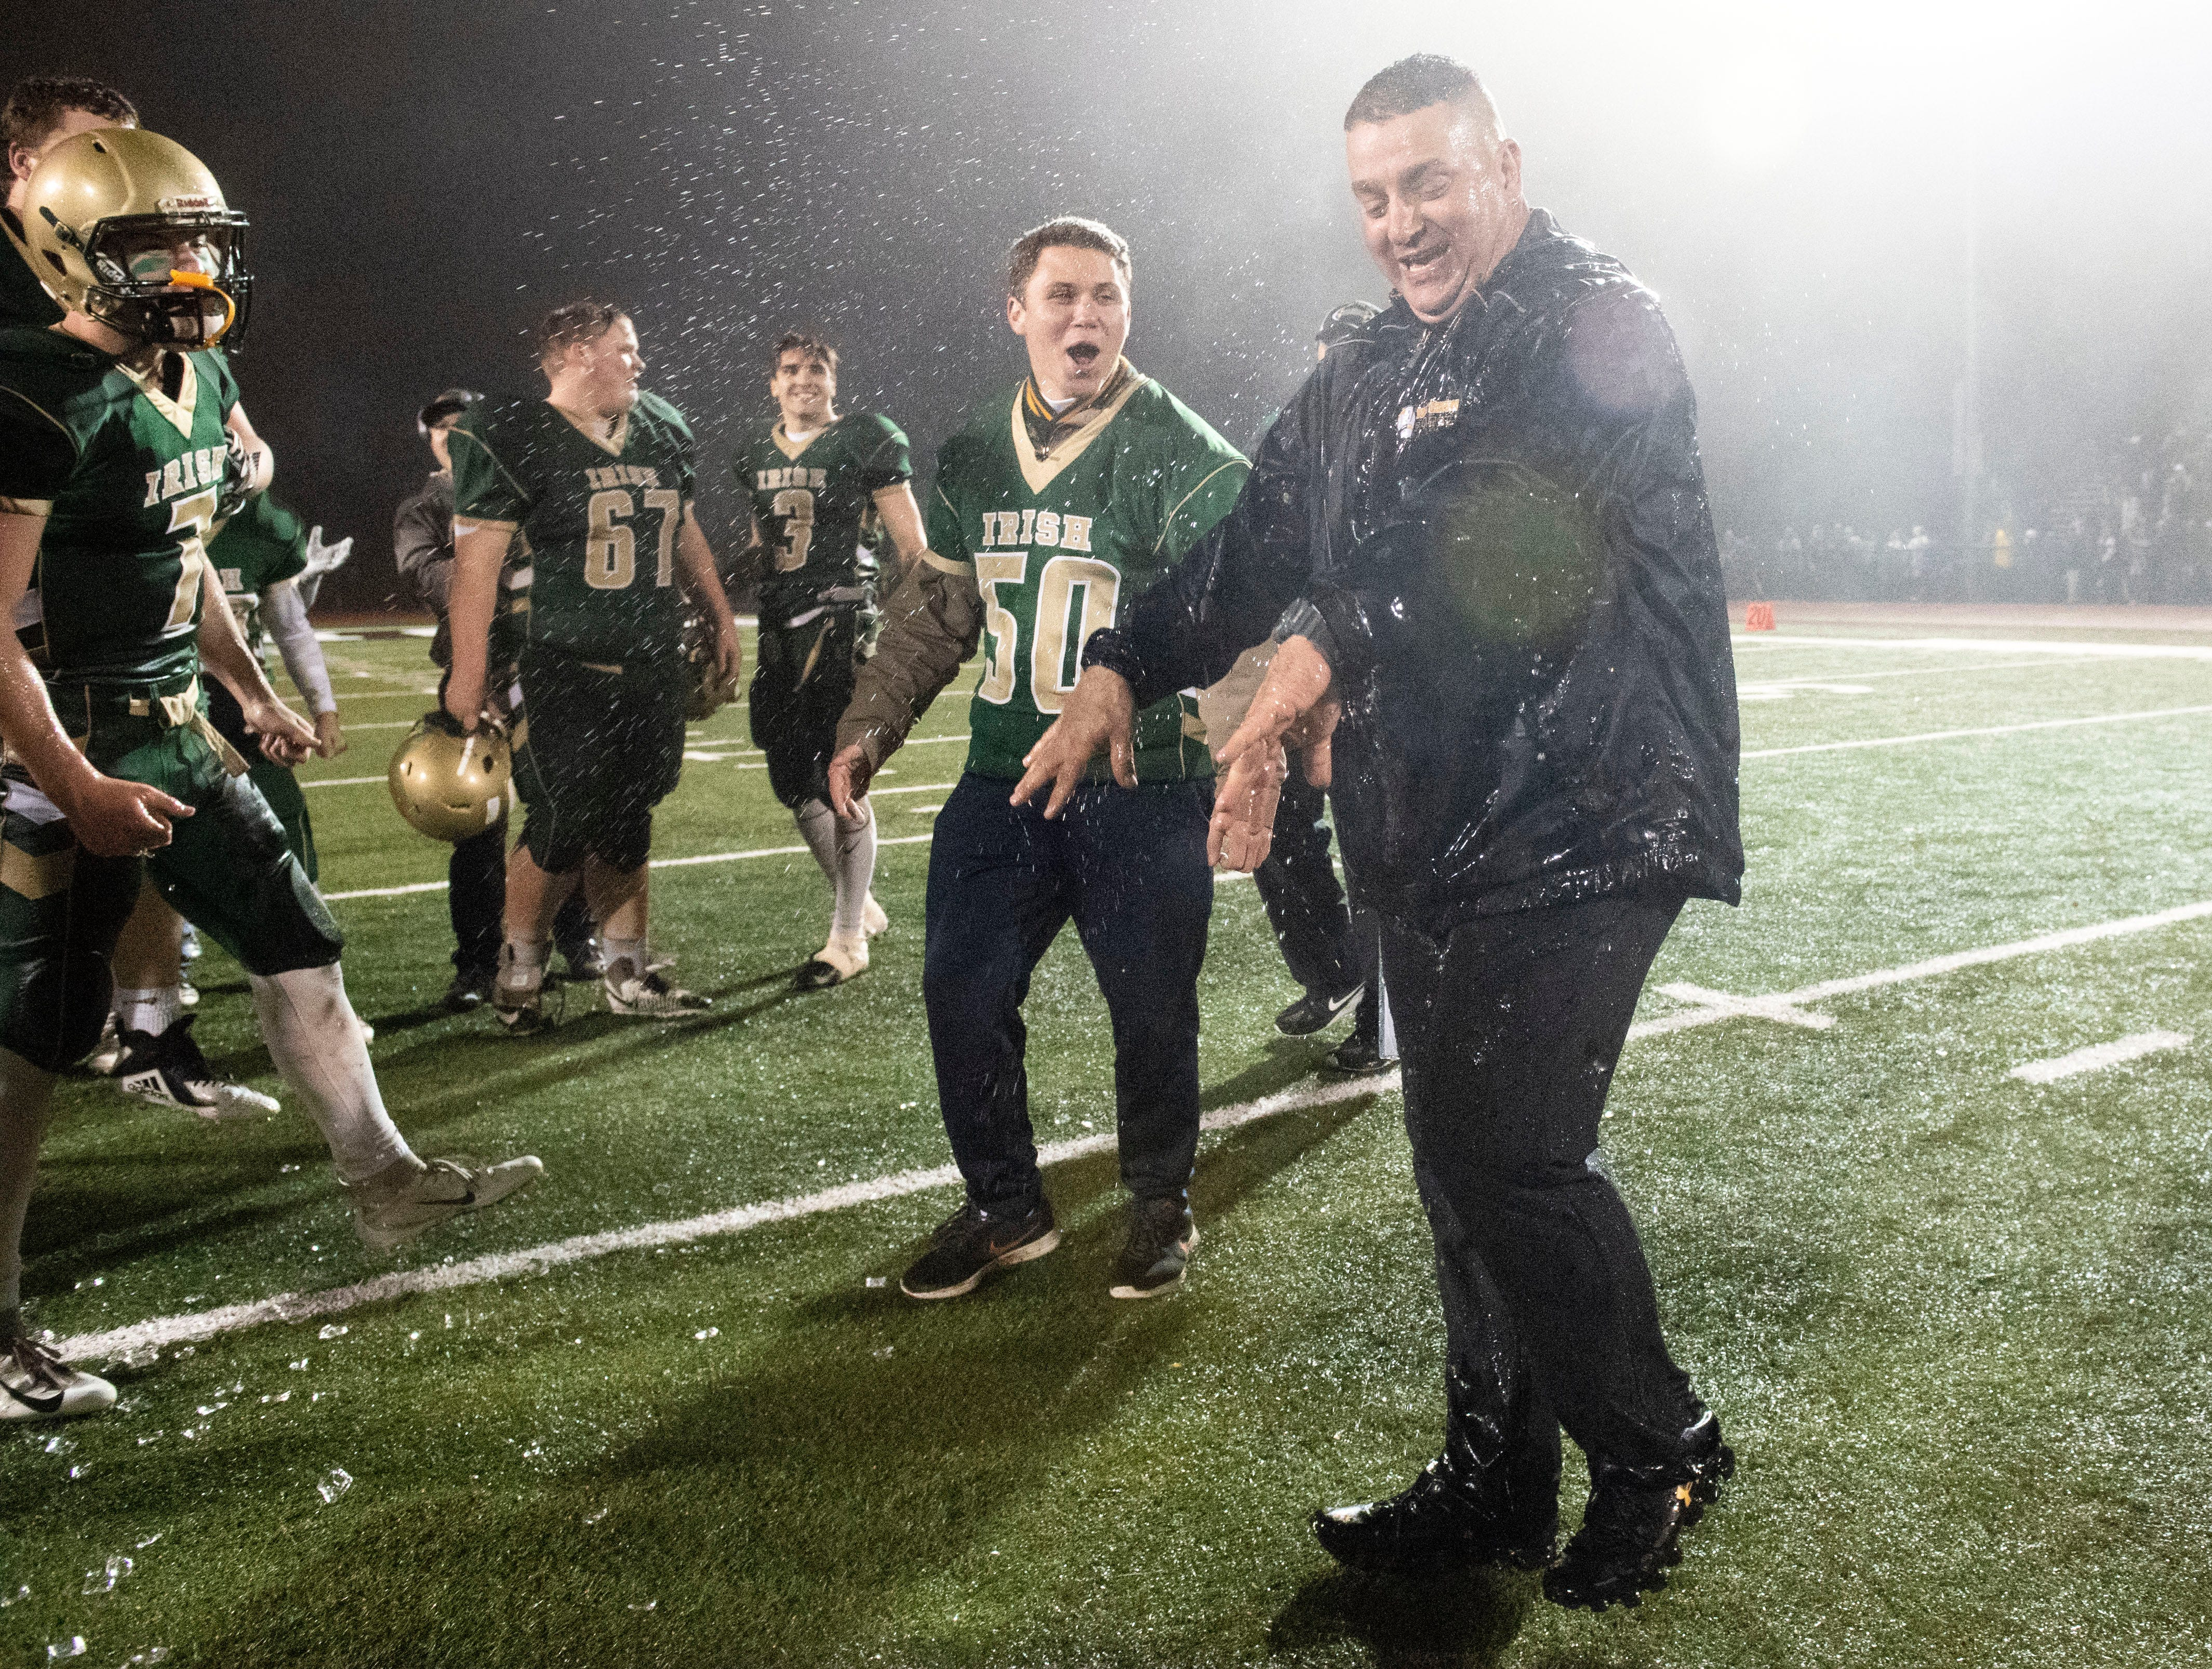 York Catholic head coach Eric Depew shakes water off him after being drenched by a water cooler following the Fighting Irish's District III 2A championship win at South Western High School on Nov. 9, 2018. The York Catholic Fighting Irish beat the Delone Catholic Squires in overtime, 28-21.